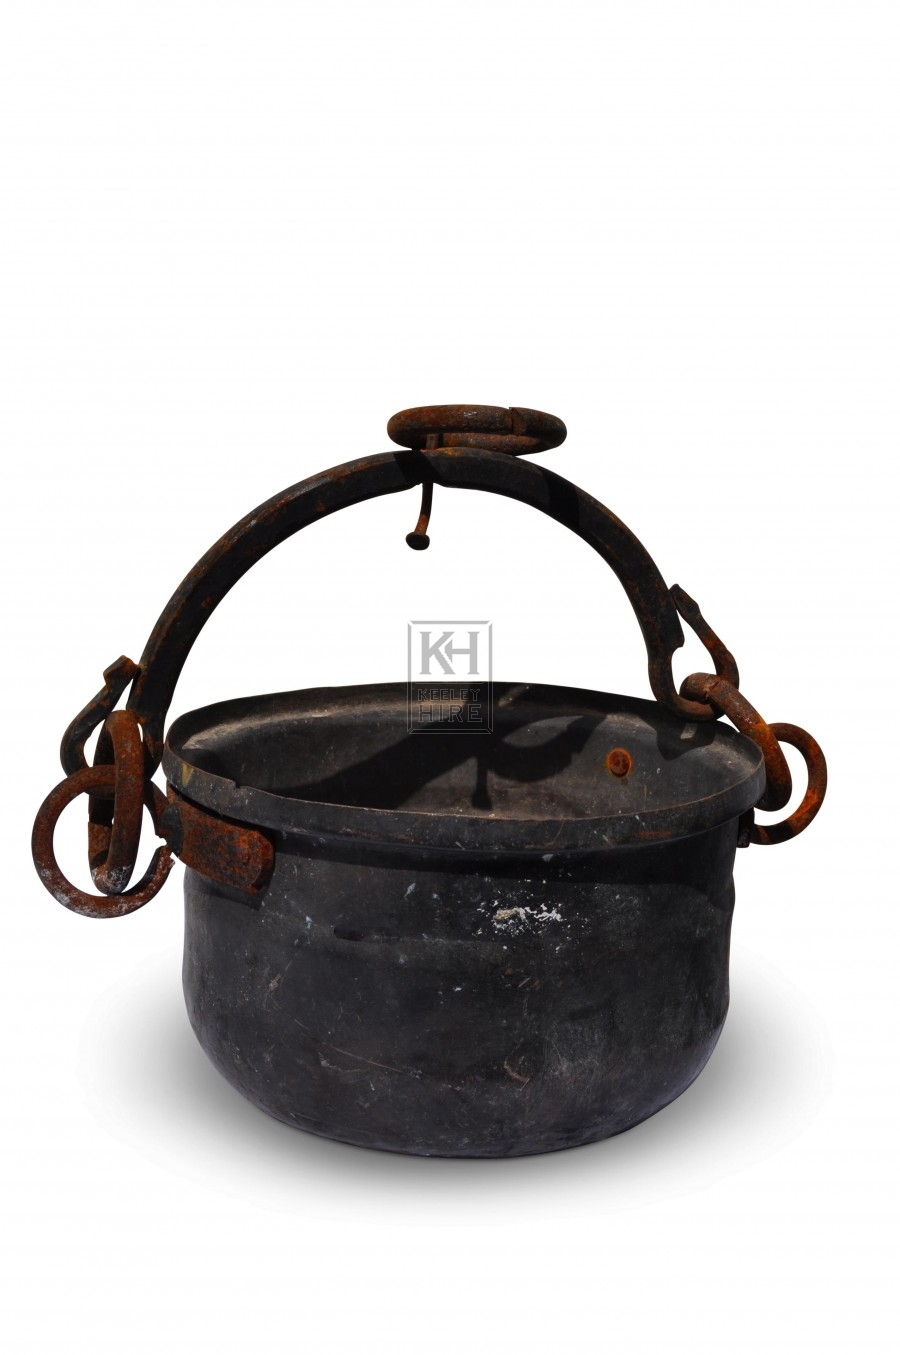 Iron Cooking Pot with hanging ring